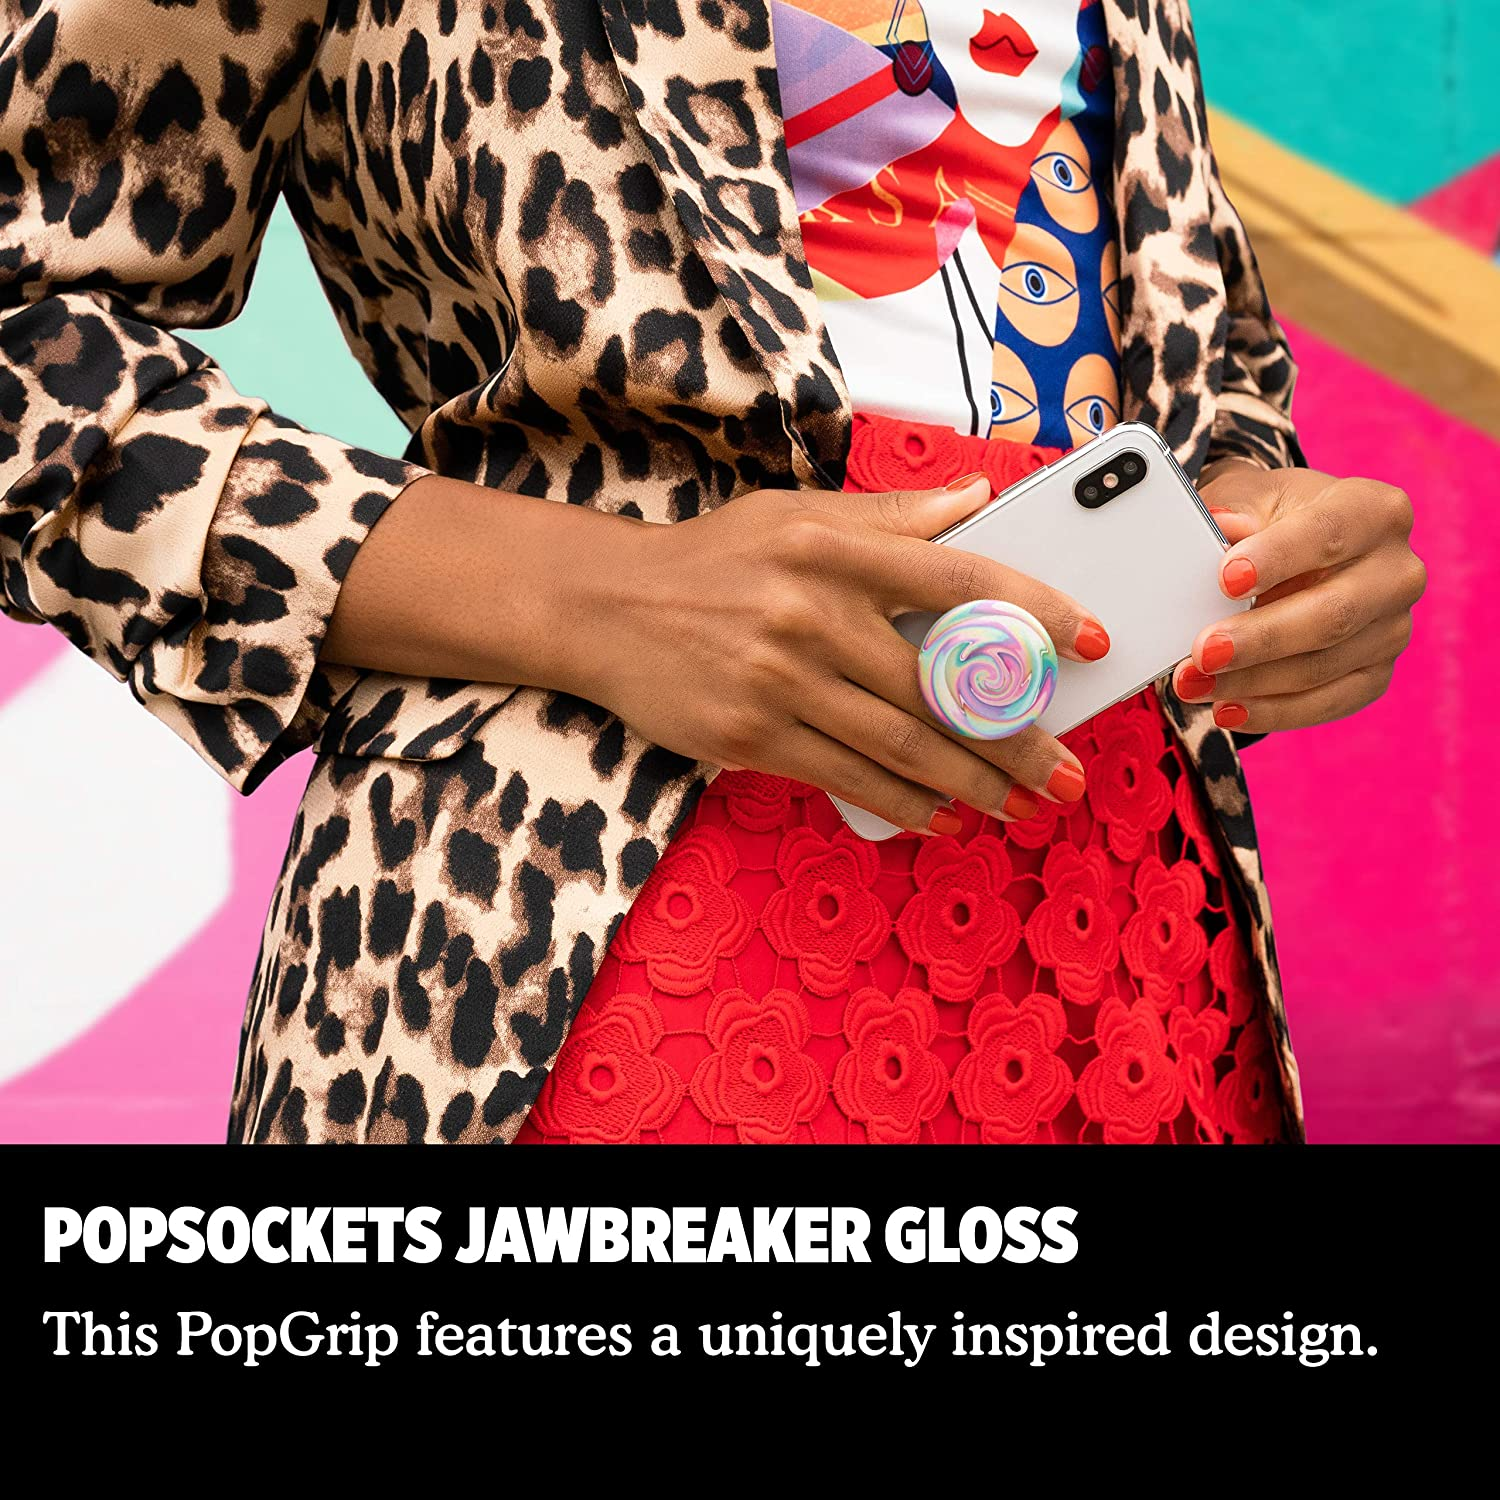 PopGrip with Swappable Top for Phones and Tablets Jawbreaker Gloss PopSockets